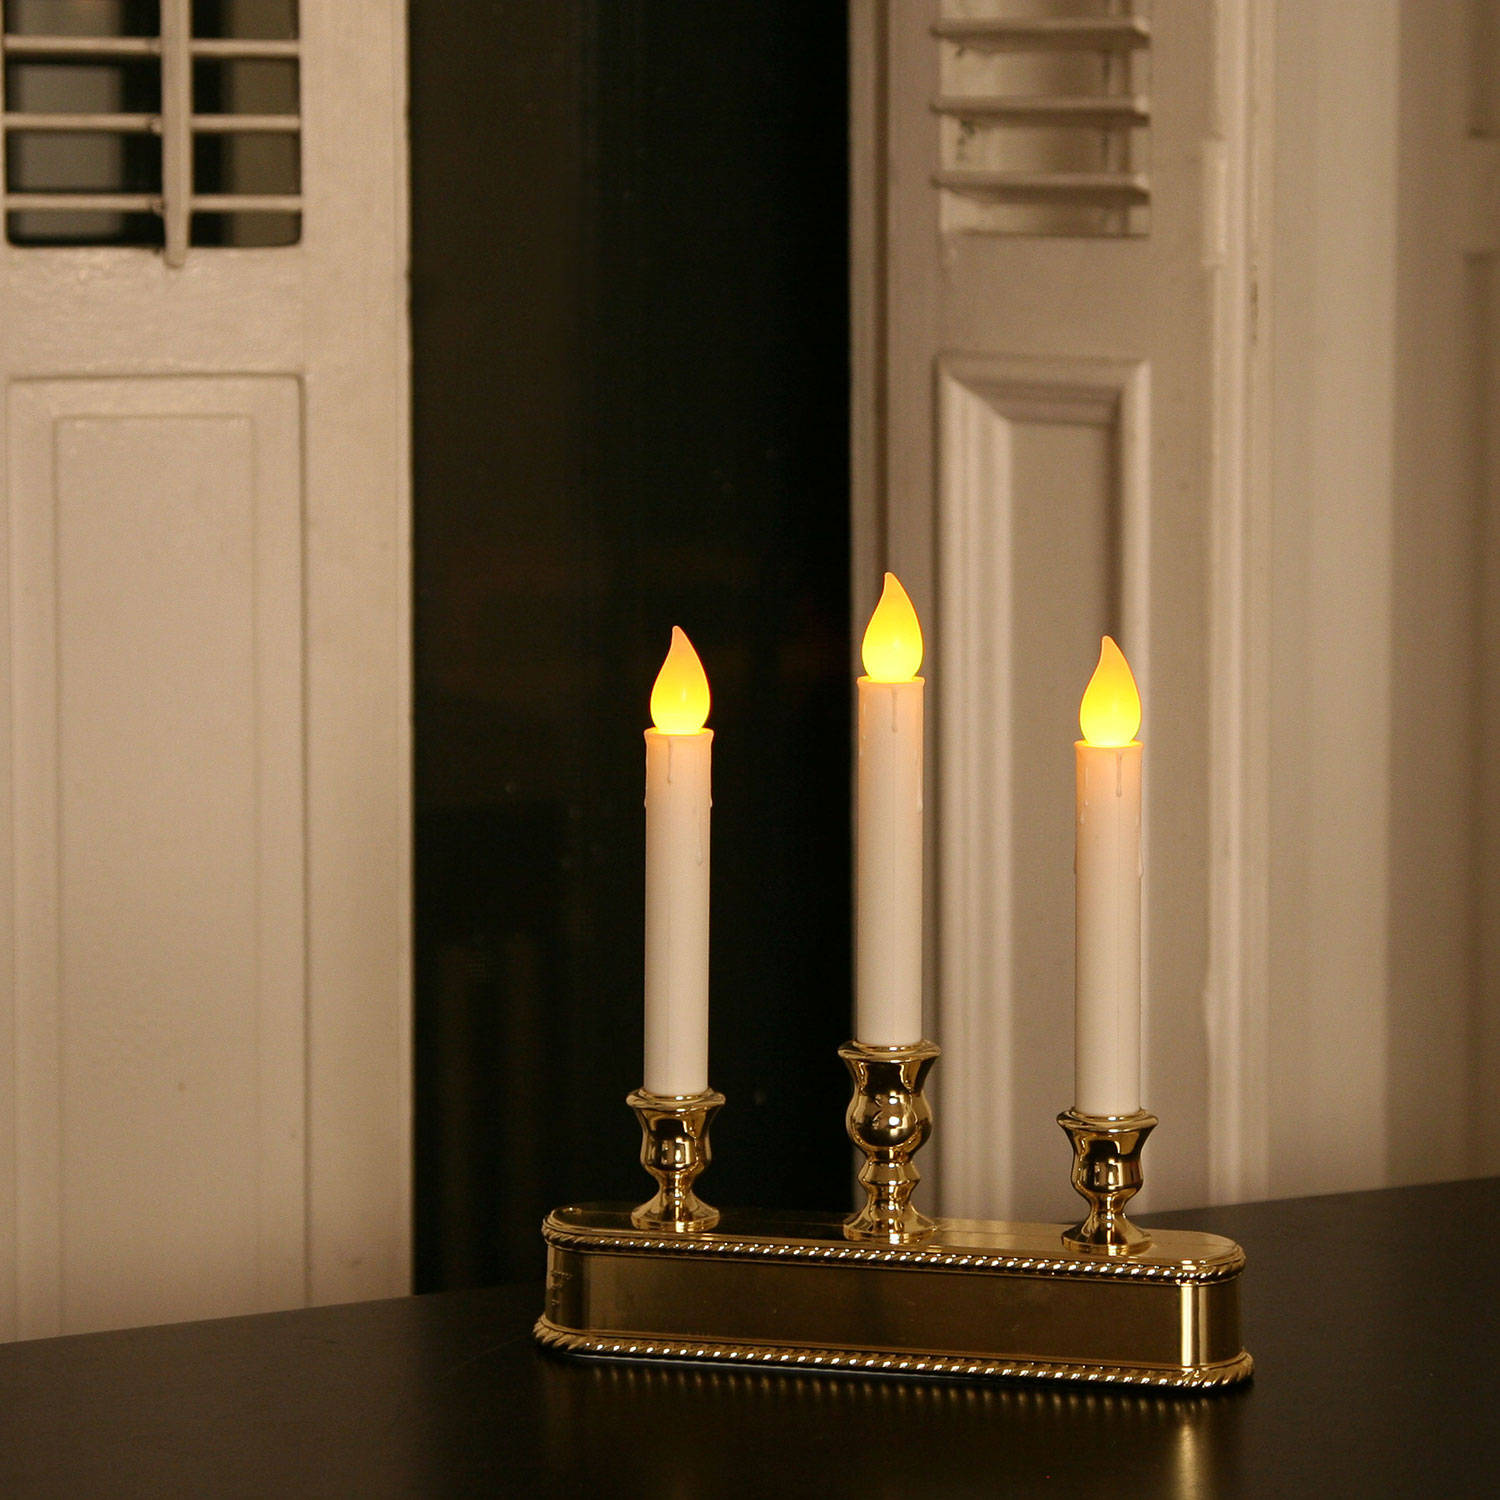 flameless candles taper candles gold. Black Bedroom Furniture Sets. Home Design Ideas